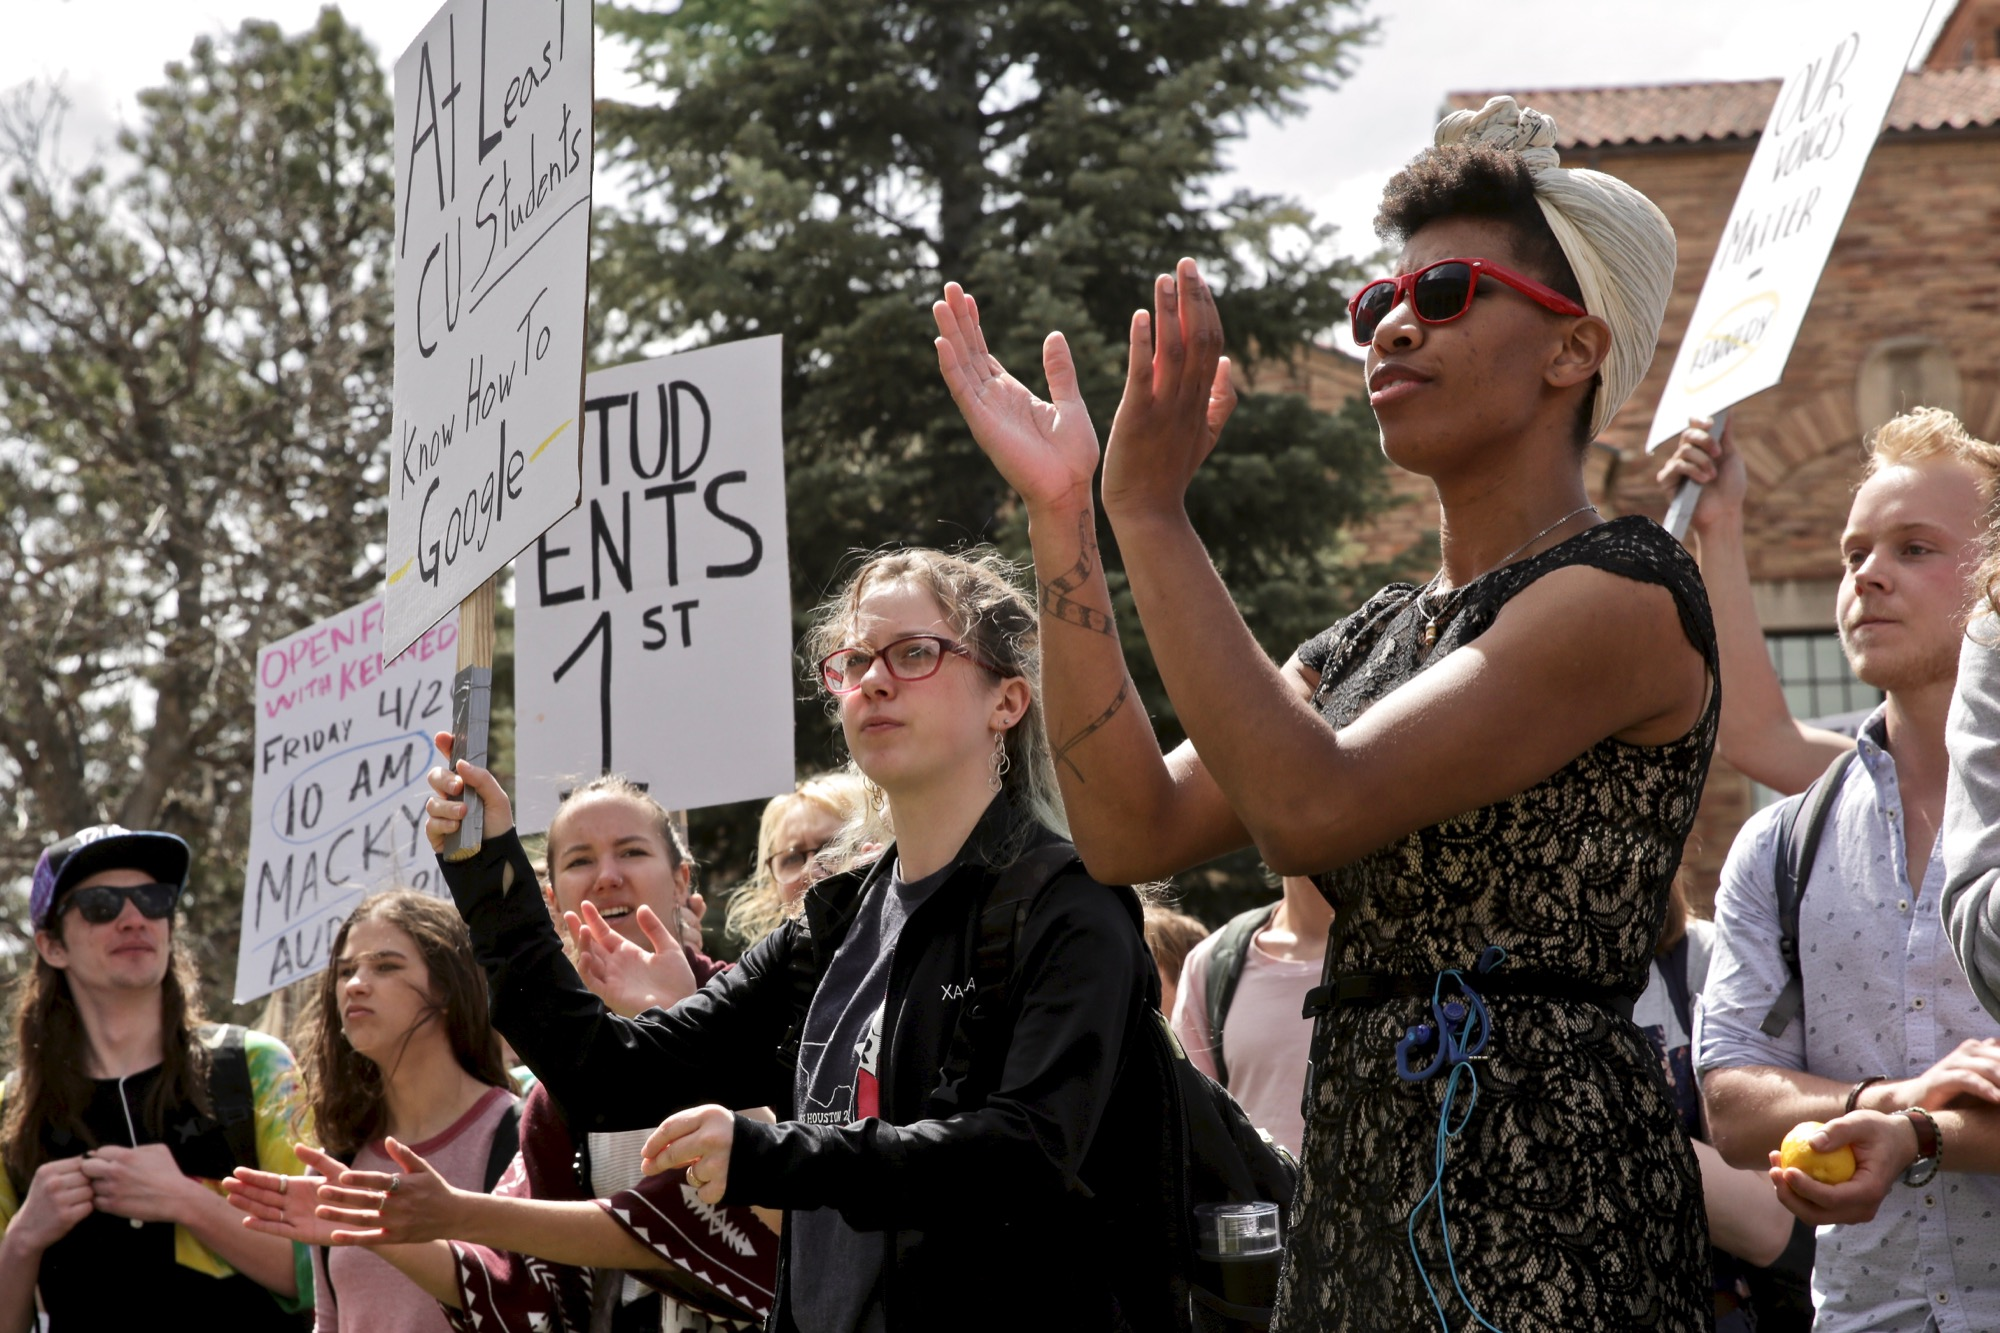 <p>Protesters opposed to the possibility of Mark Kennedy being named the next president of the University of Colorado gathered in front of Norlin Library on campus Monday April 15, 2019.</p>